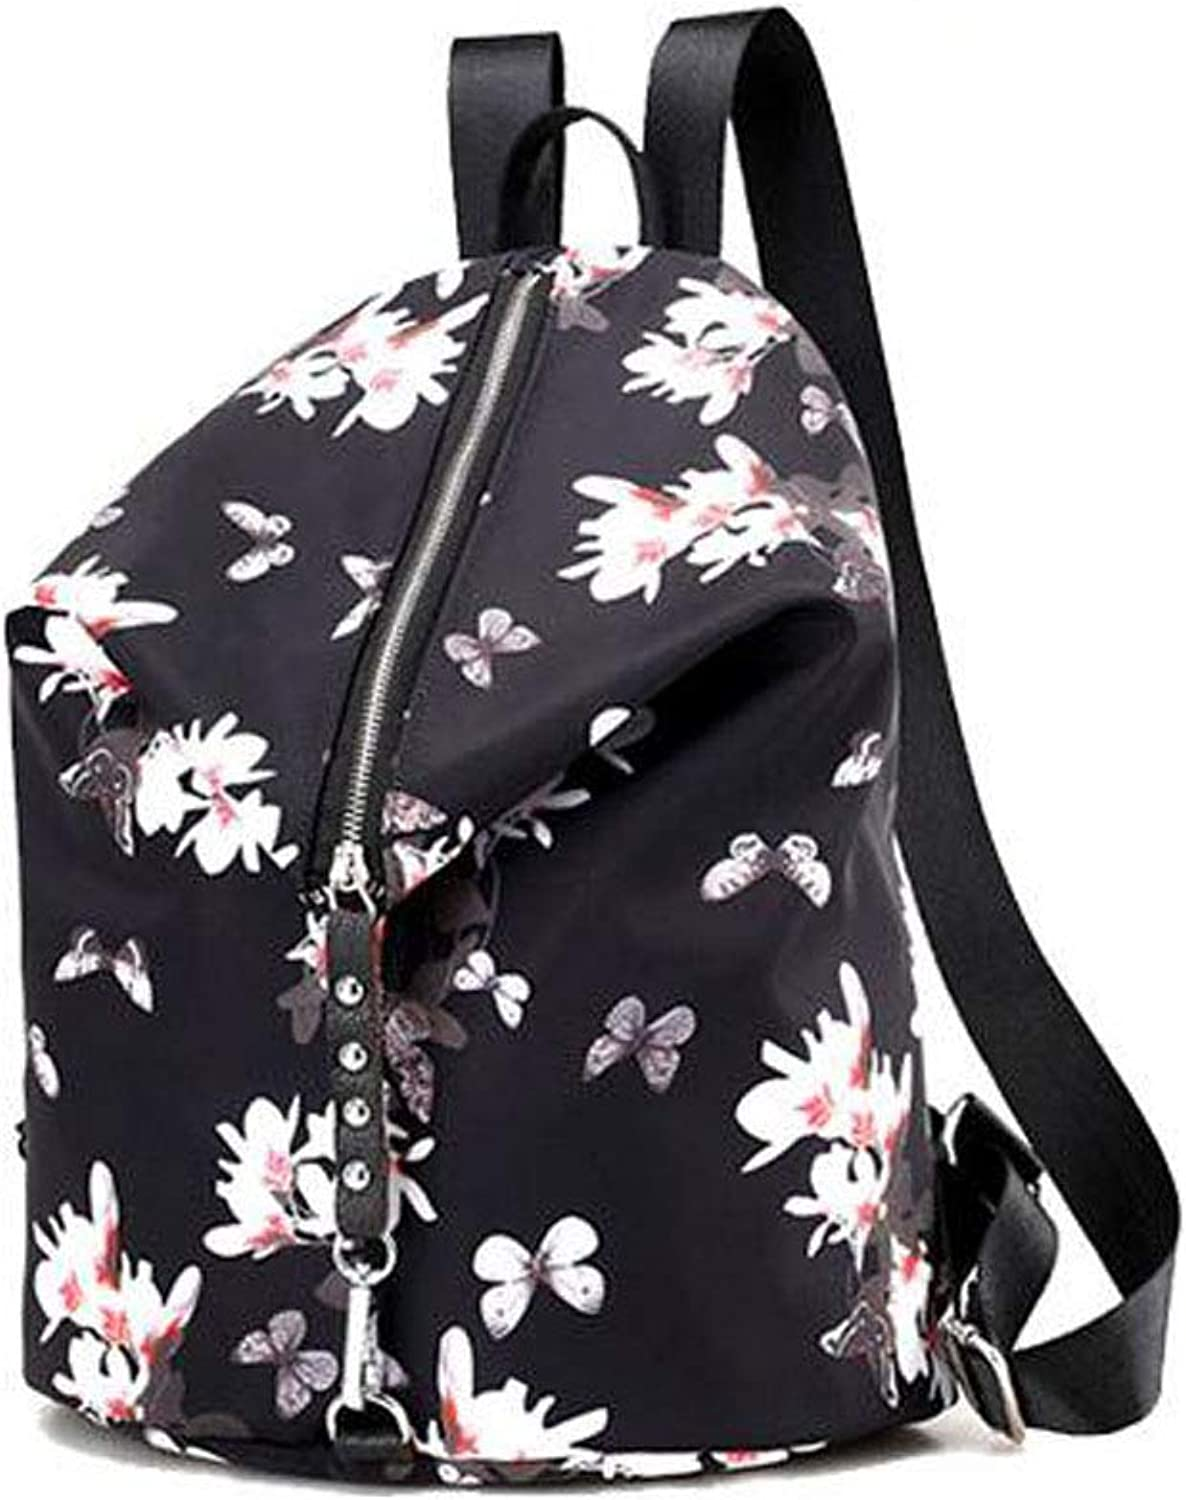 Women's Backpack, Fashion Casual Printing College Shoulder Bag, (Pattern   Style Two)